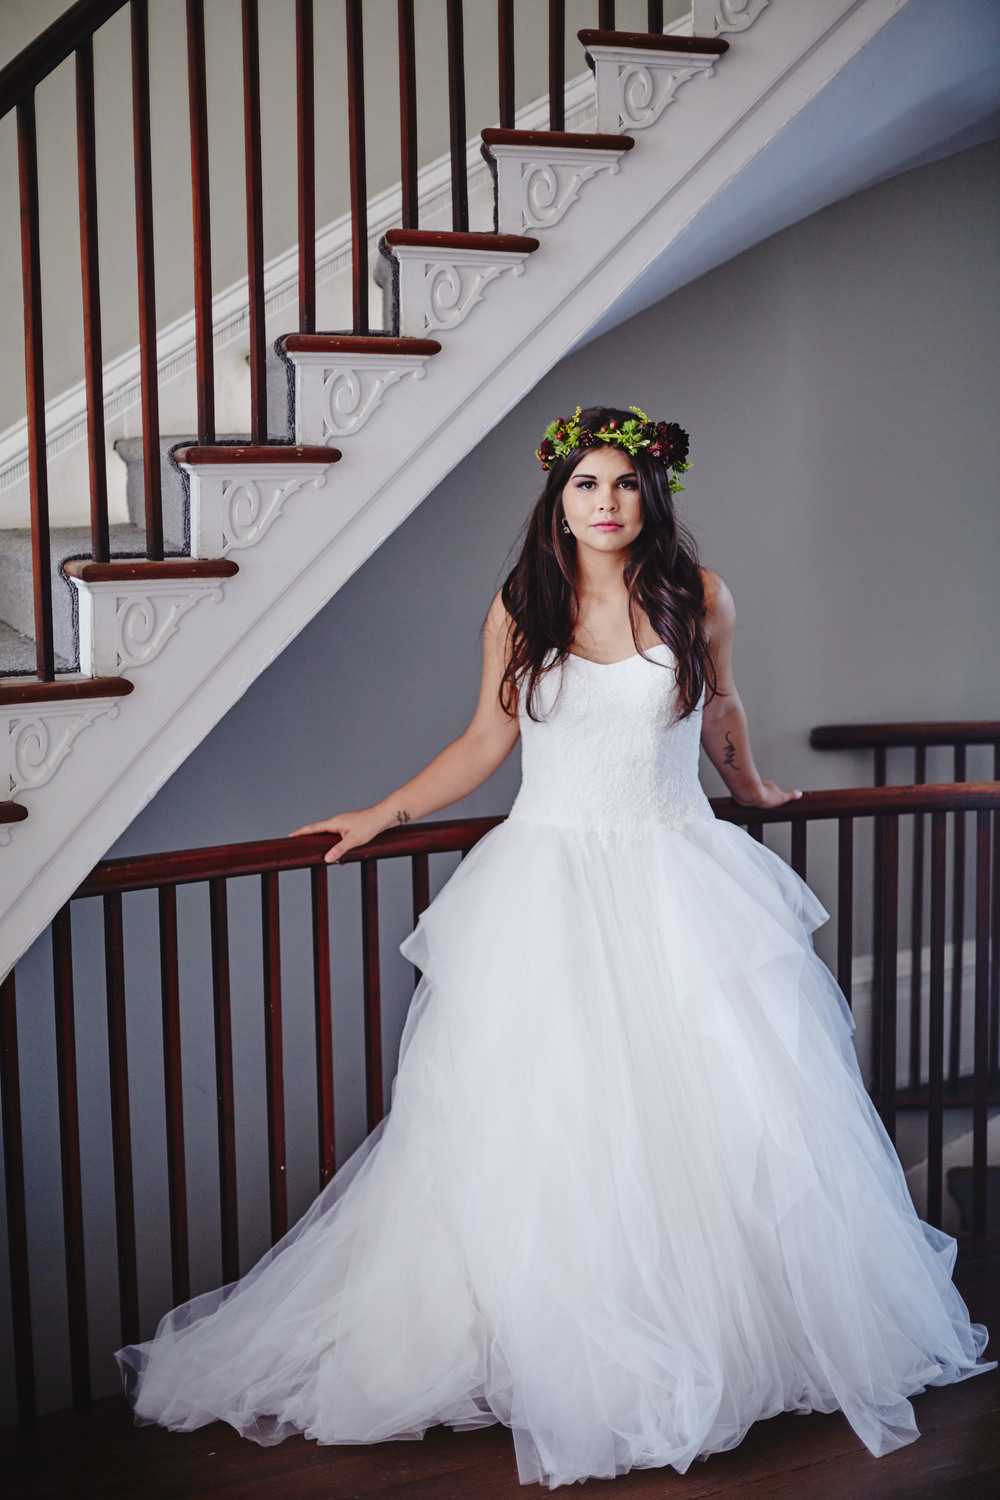 Styled_Session_Cherie_Bridal_Portraits_House_of_the_Bride 57.jpg